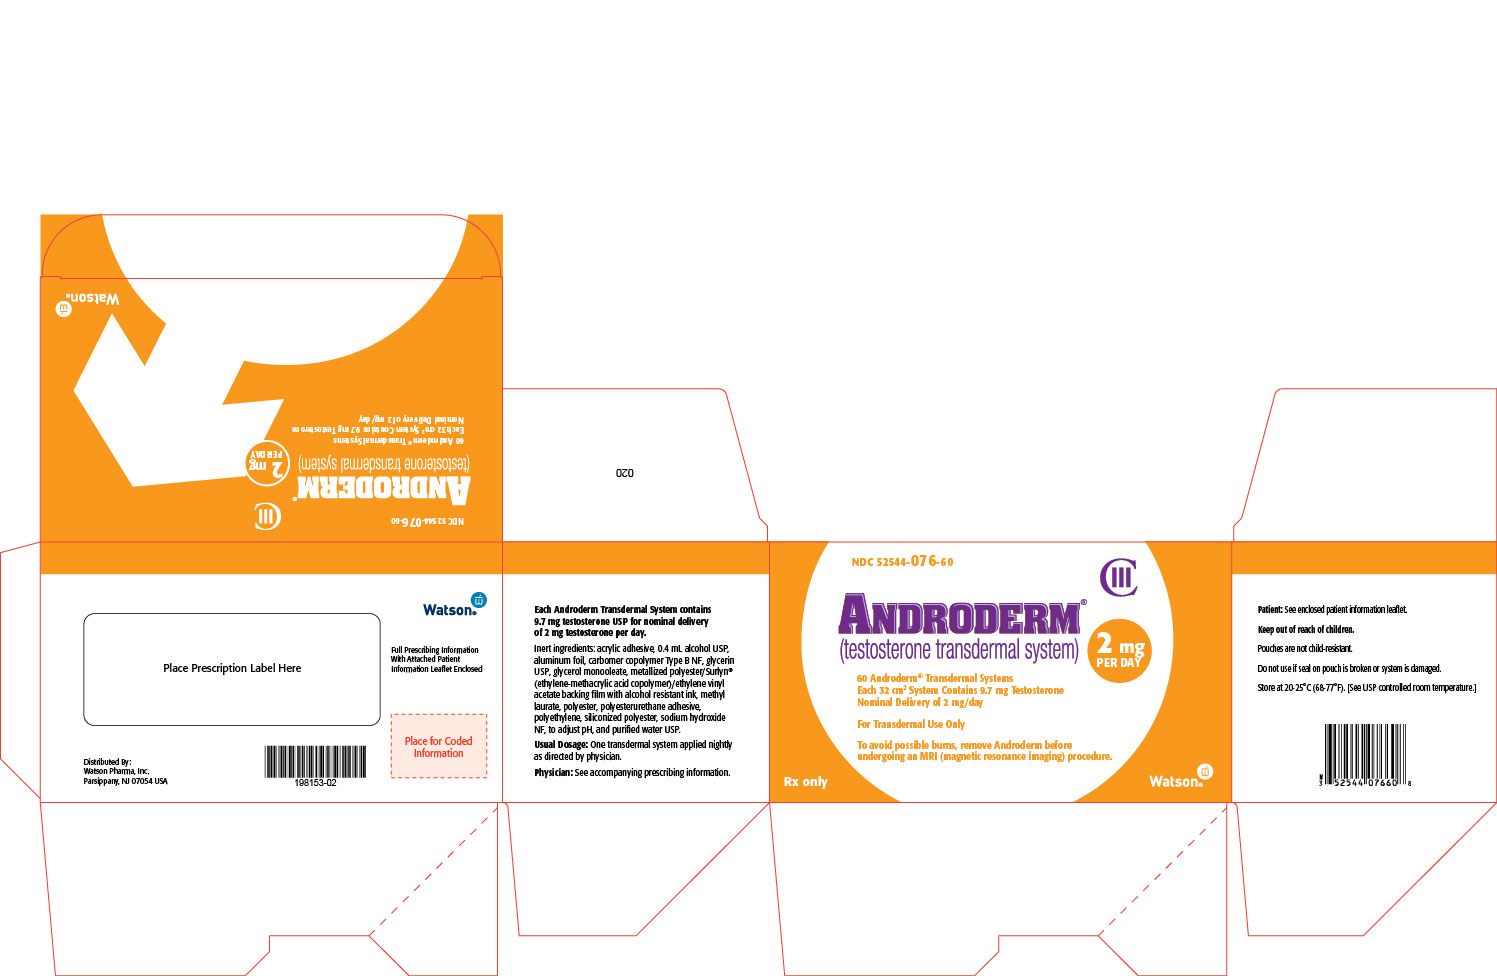 androderm patch effectiveness